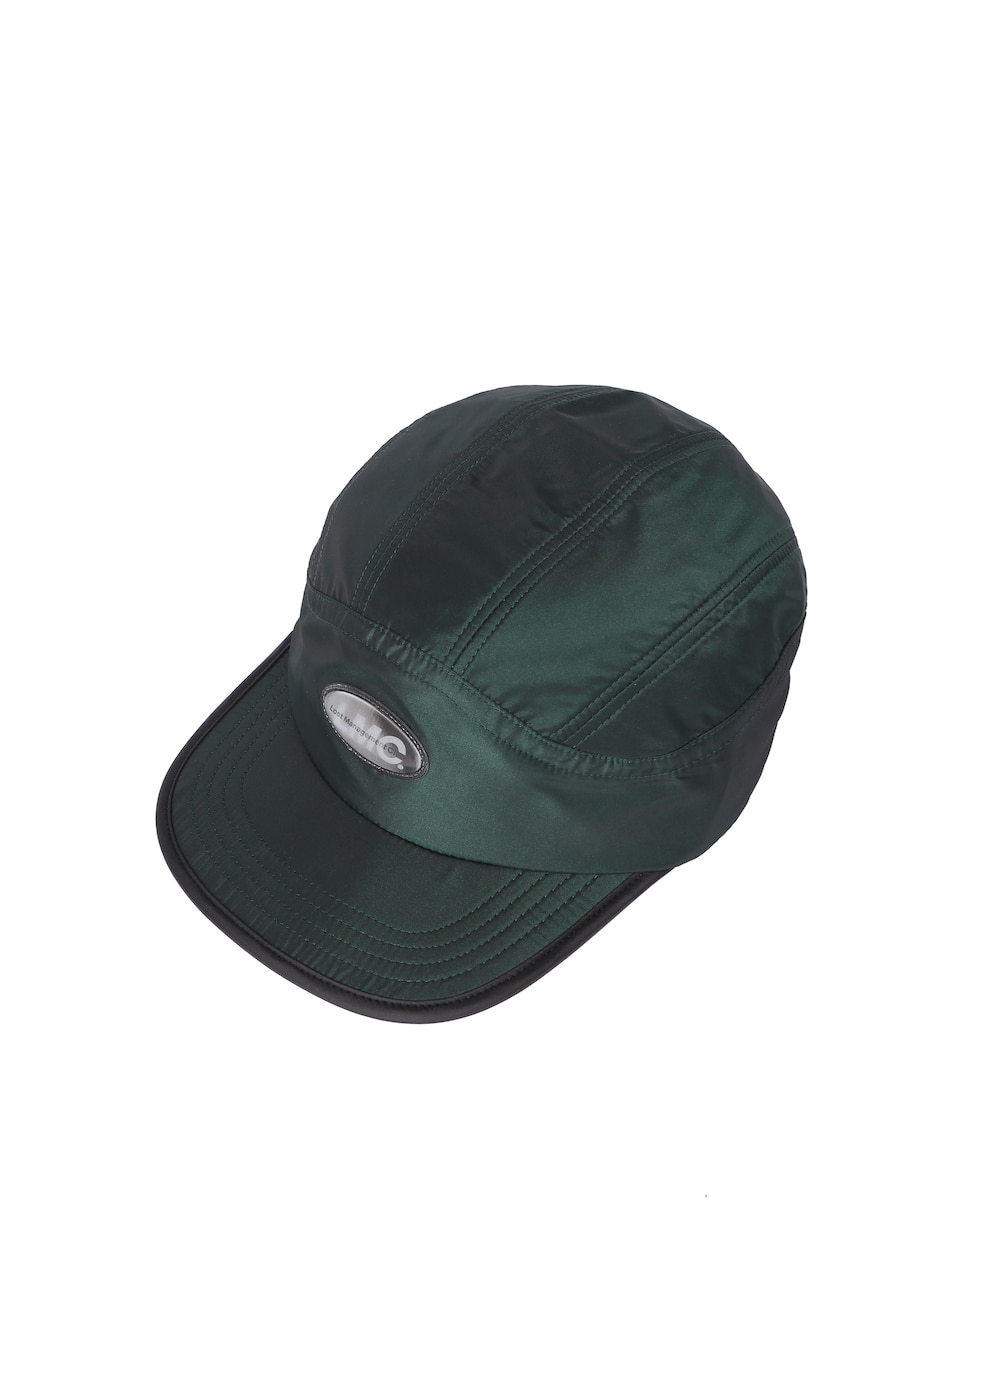 LMC LENTICULAR TRAINING CAP green